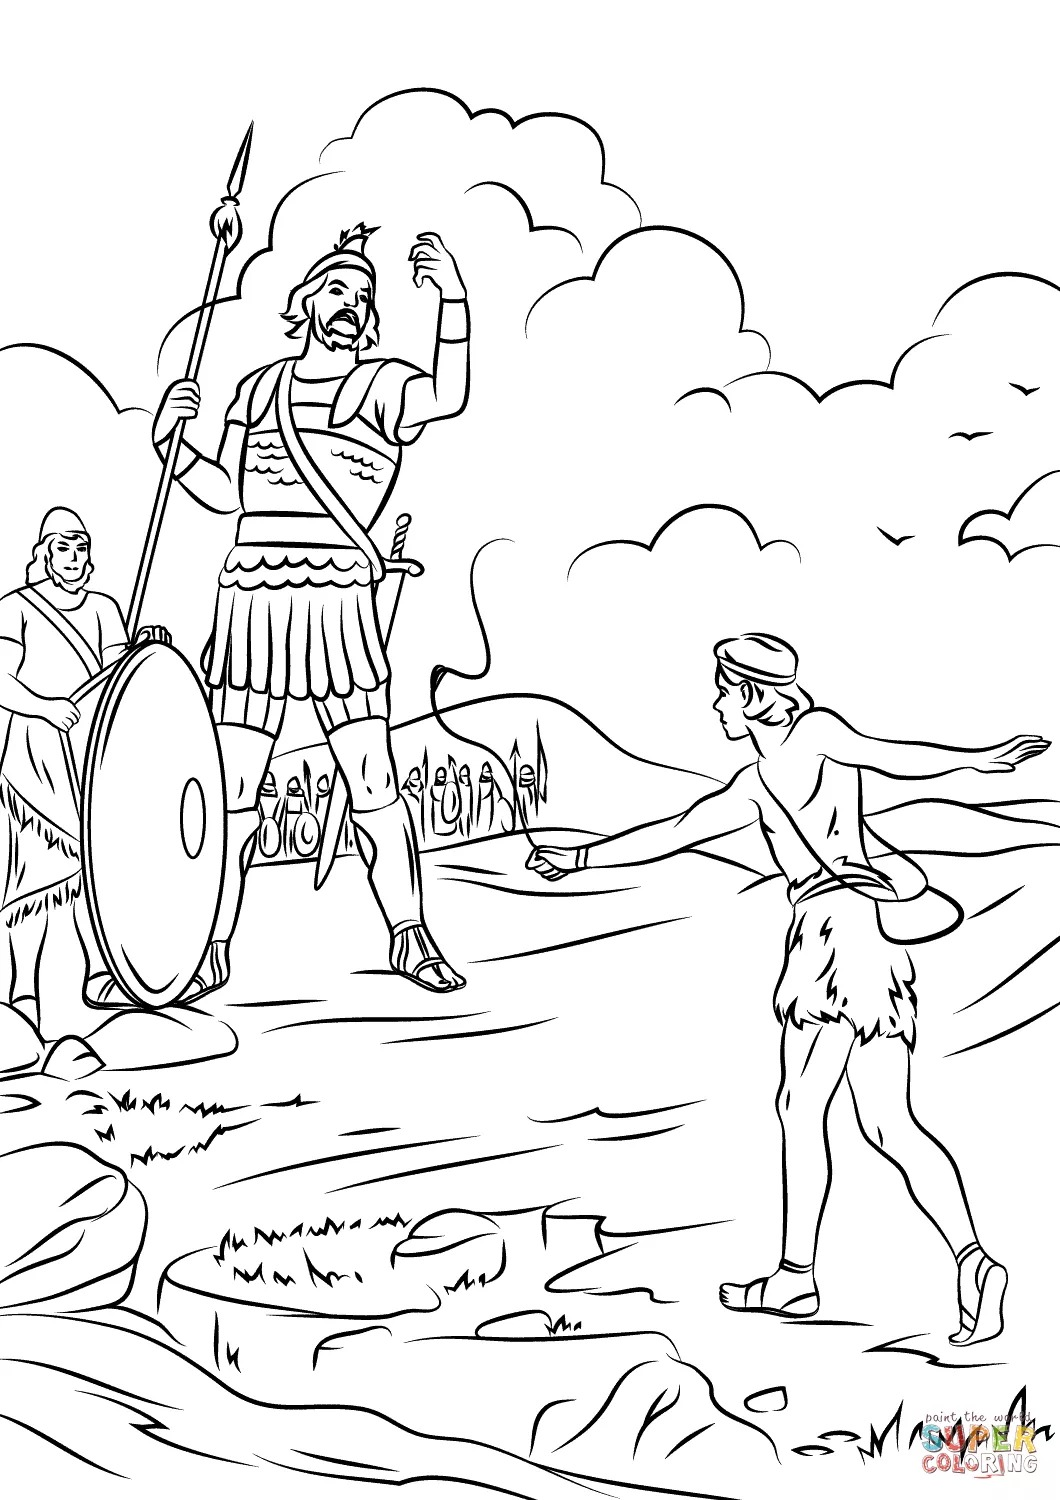 the best free goliath coloring page images from